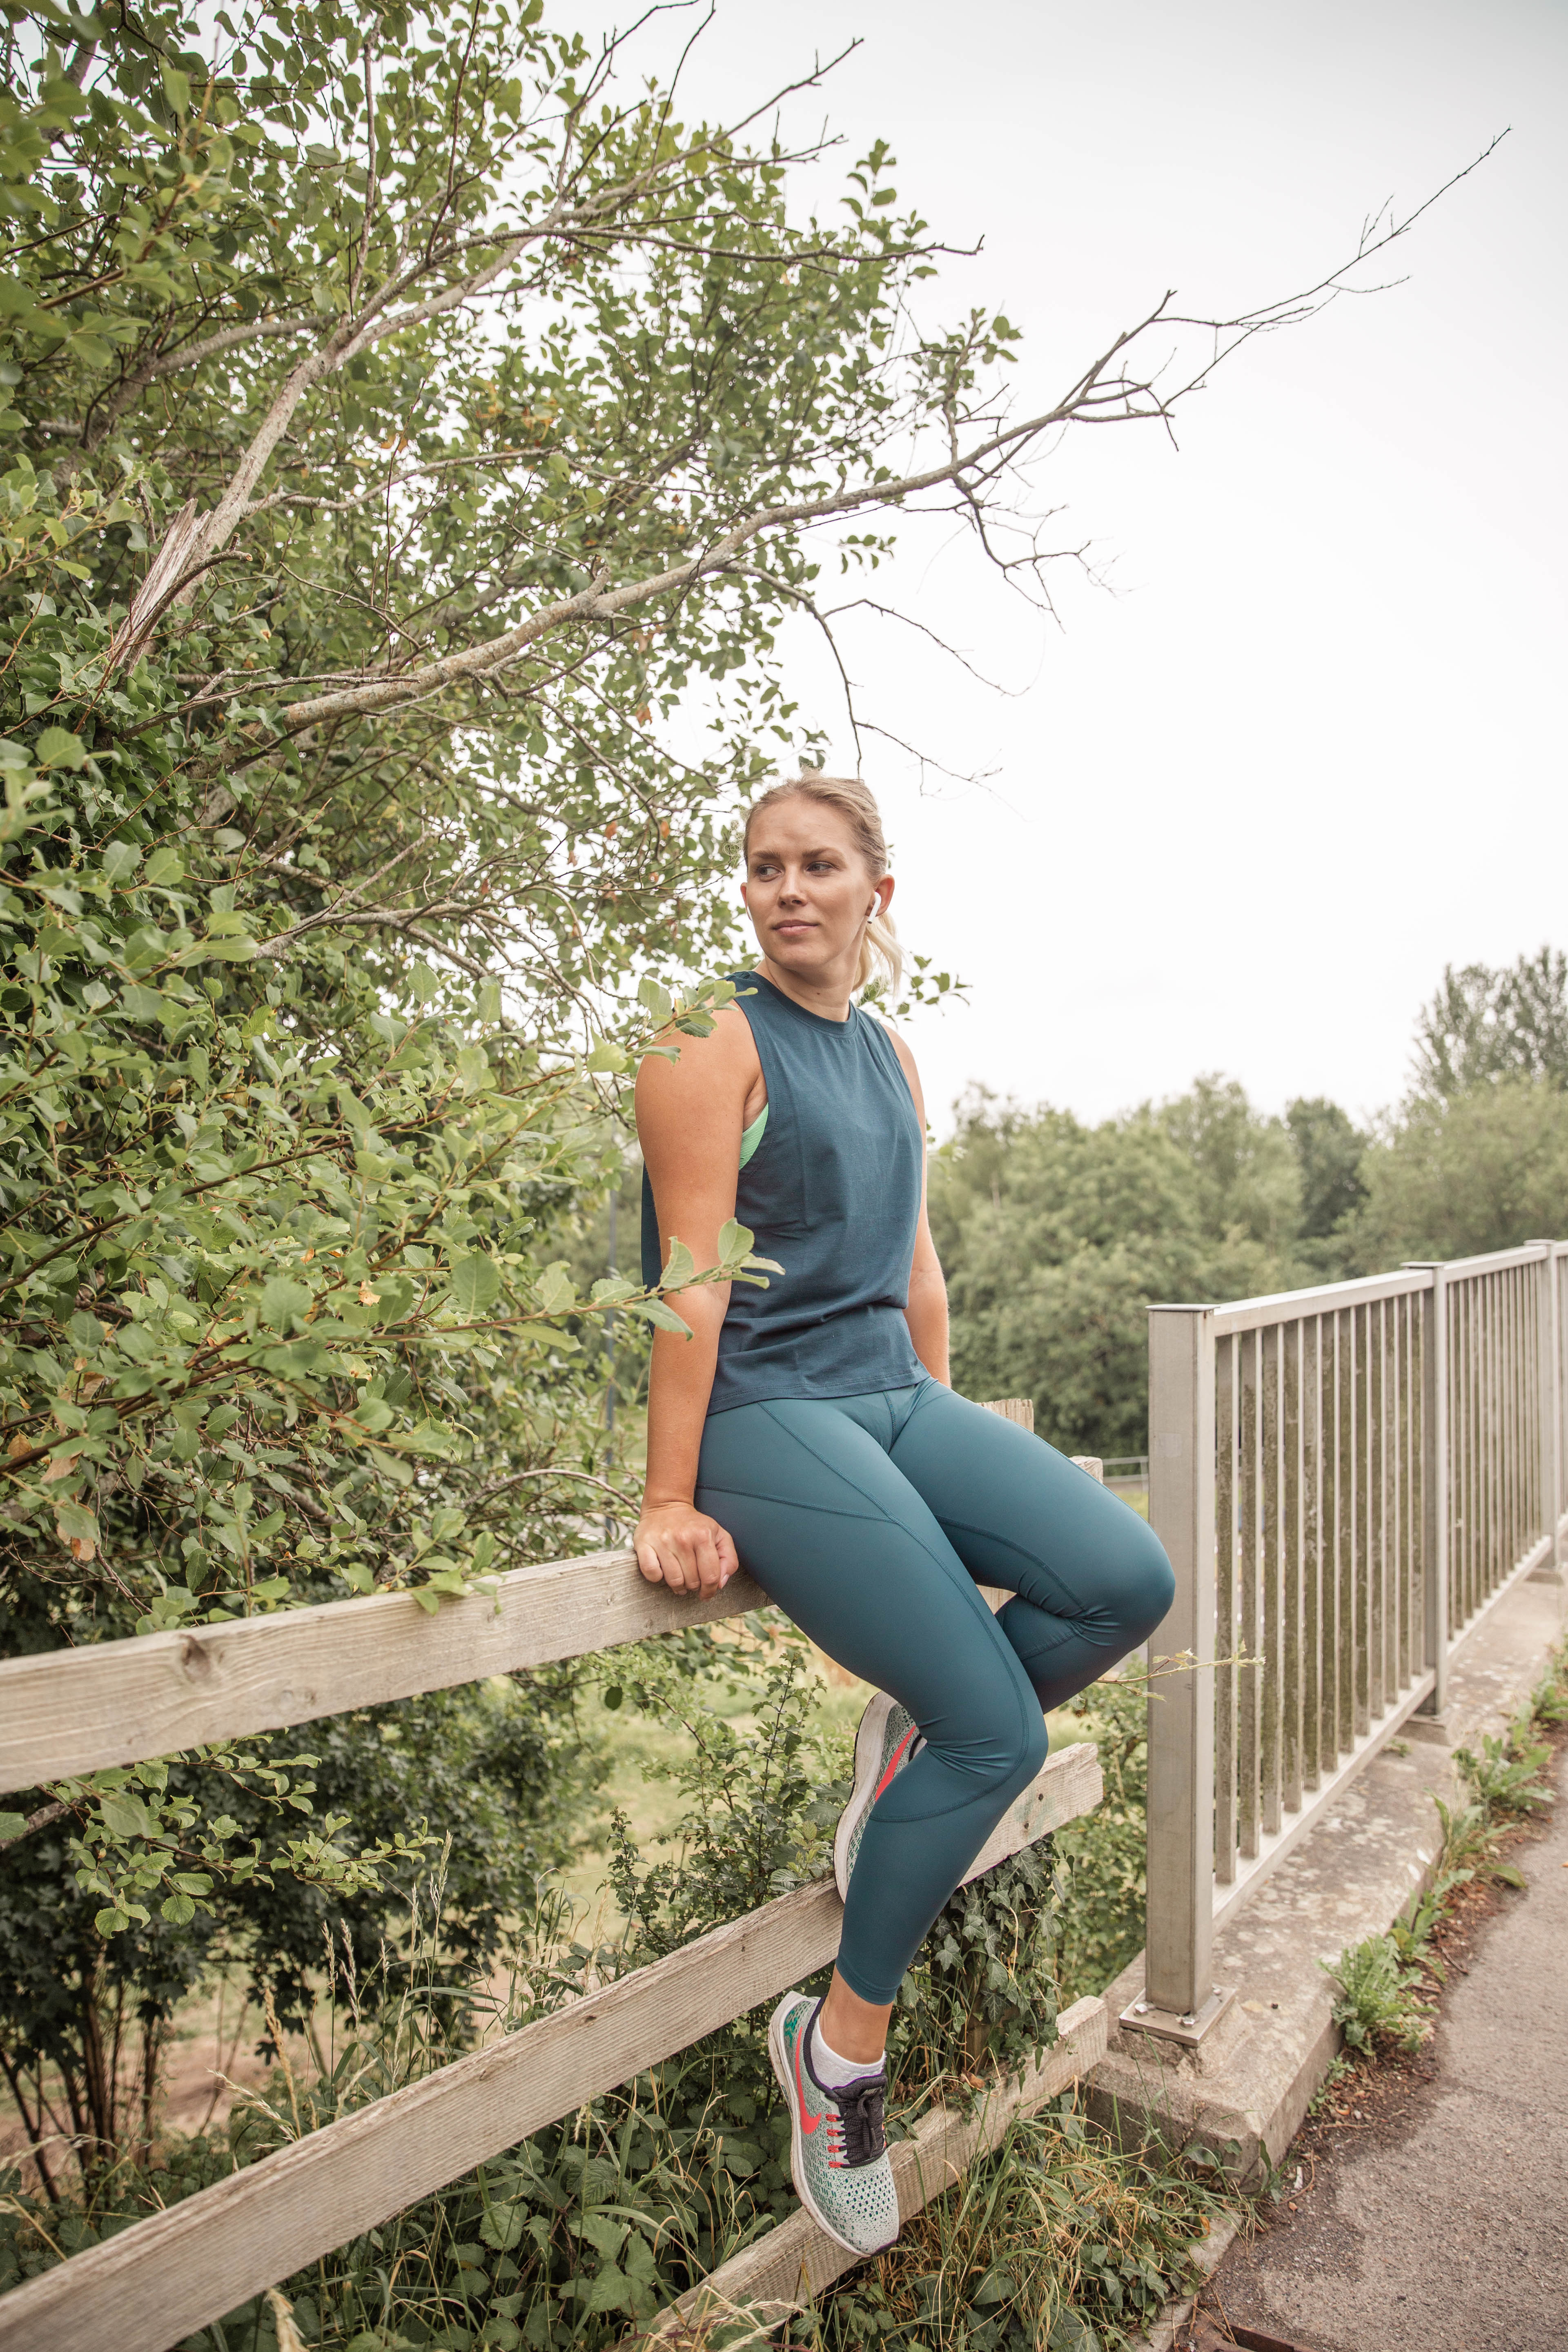 Rachel Emily sat on a fence in matching green running gear